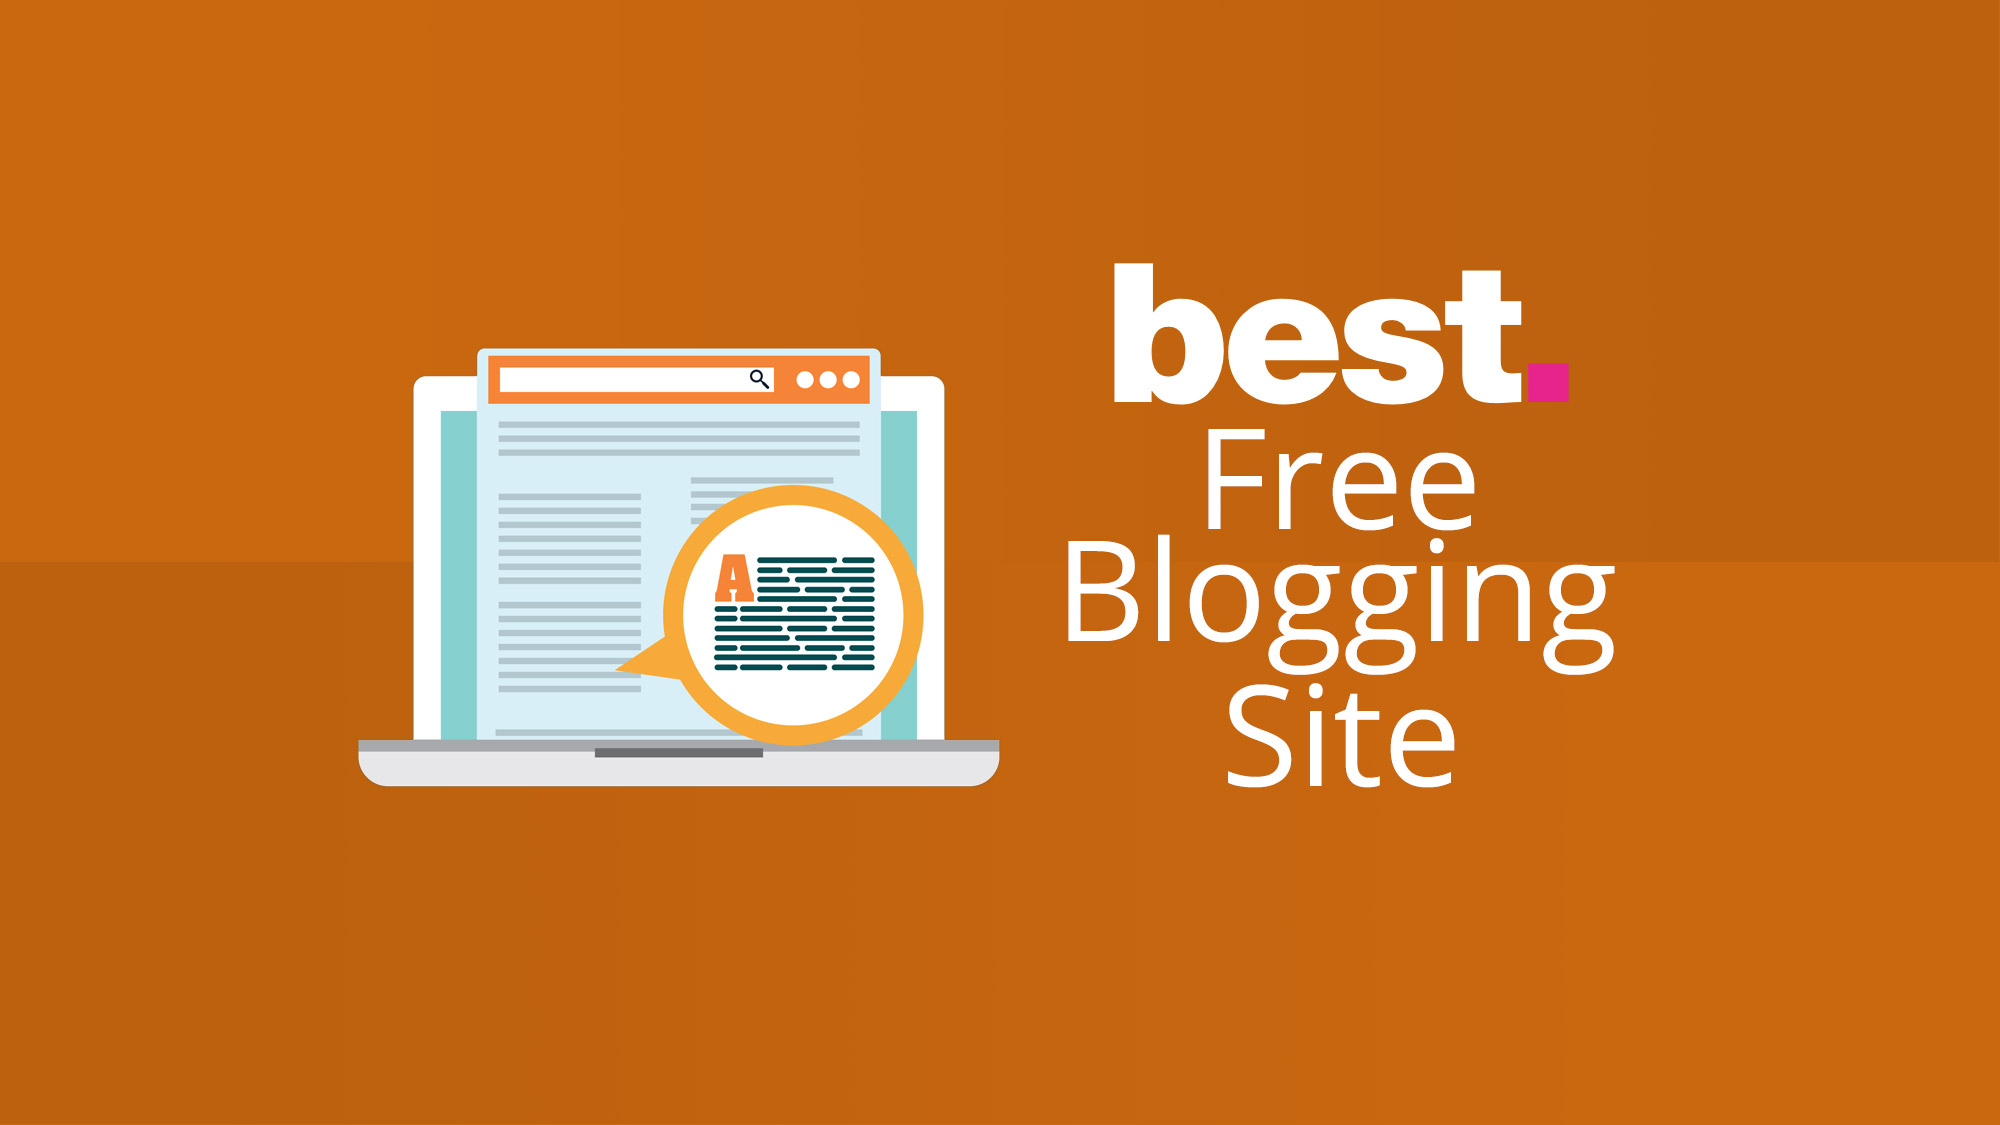 Best free blogging site of 2020